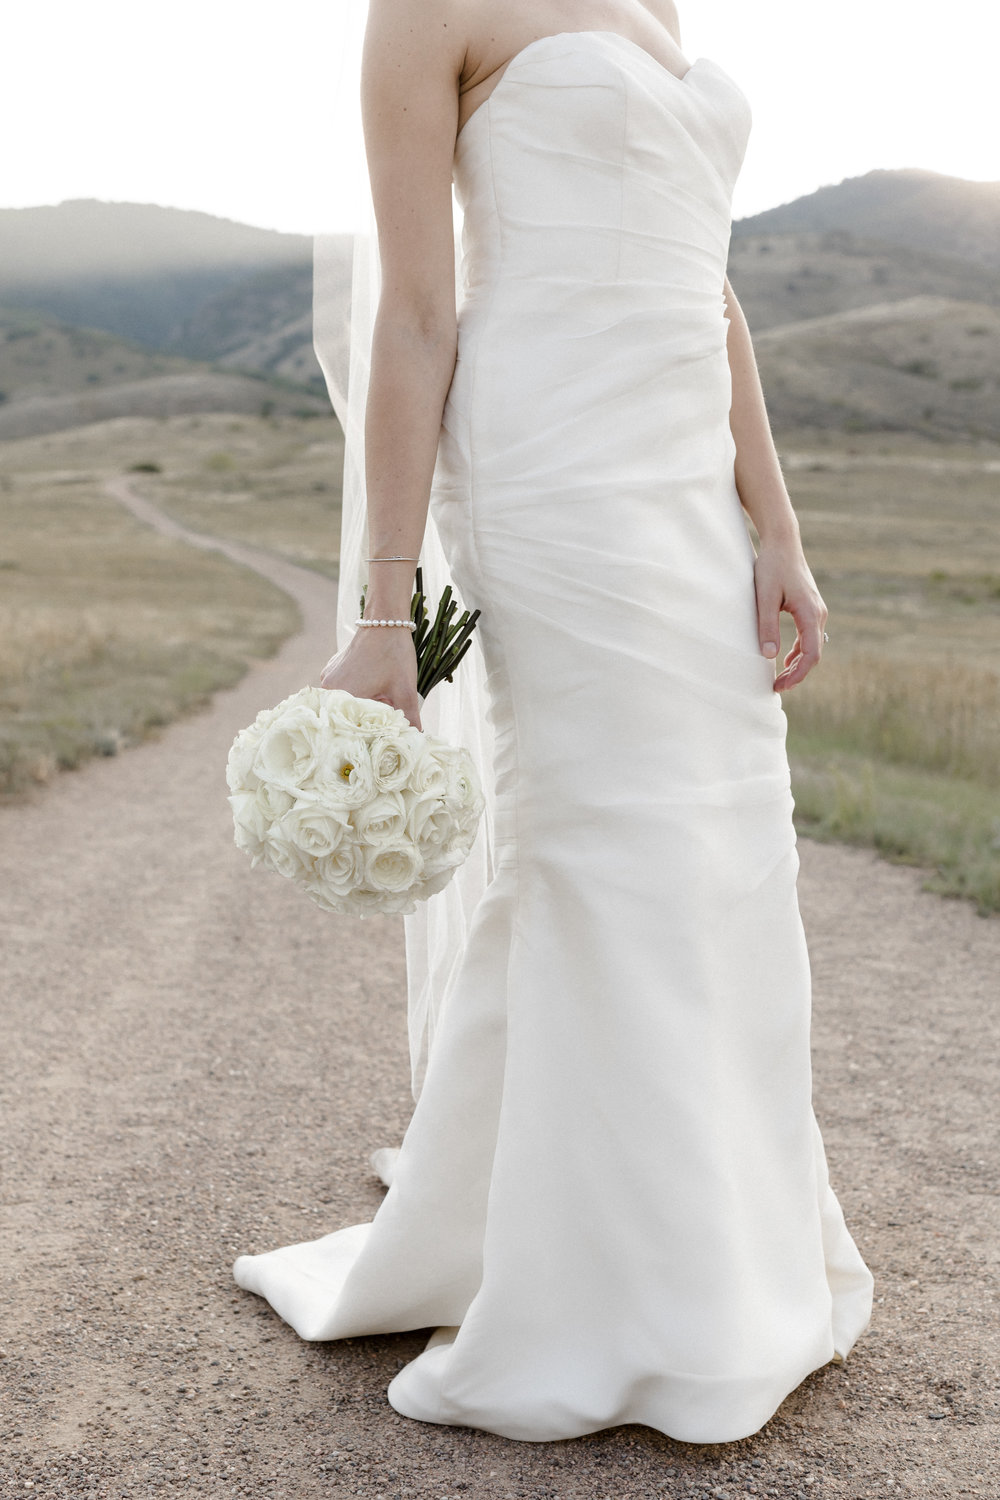 Hailley+Howard_Colorado+Wedding_The+Manor+House-435.jpg